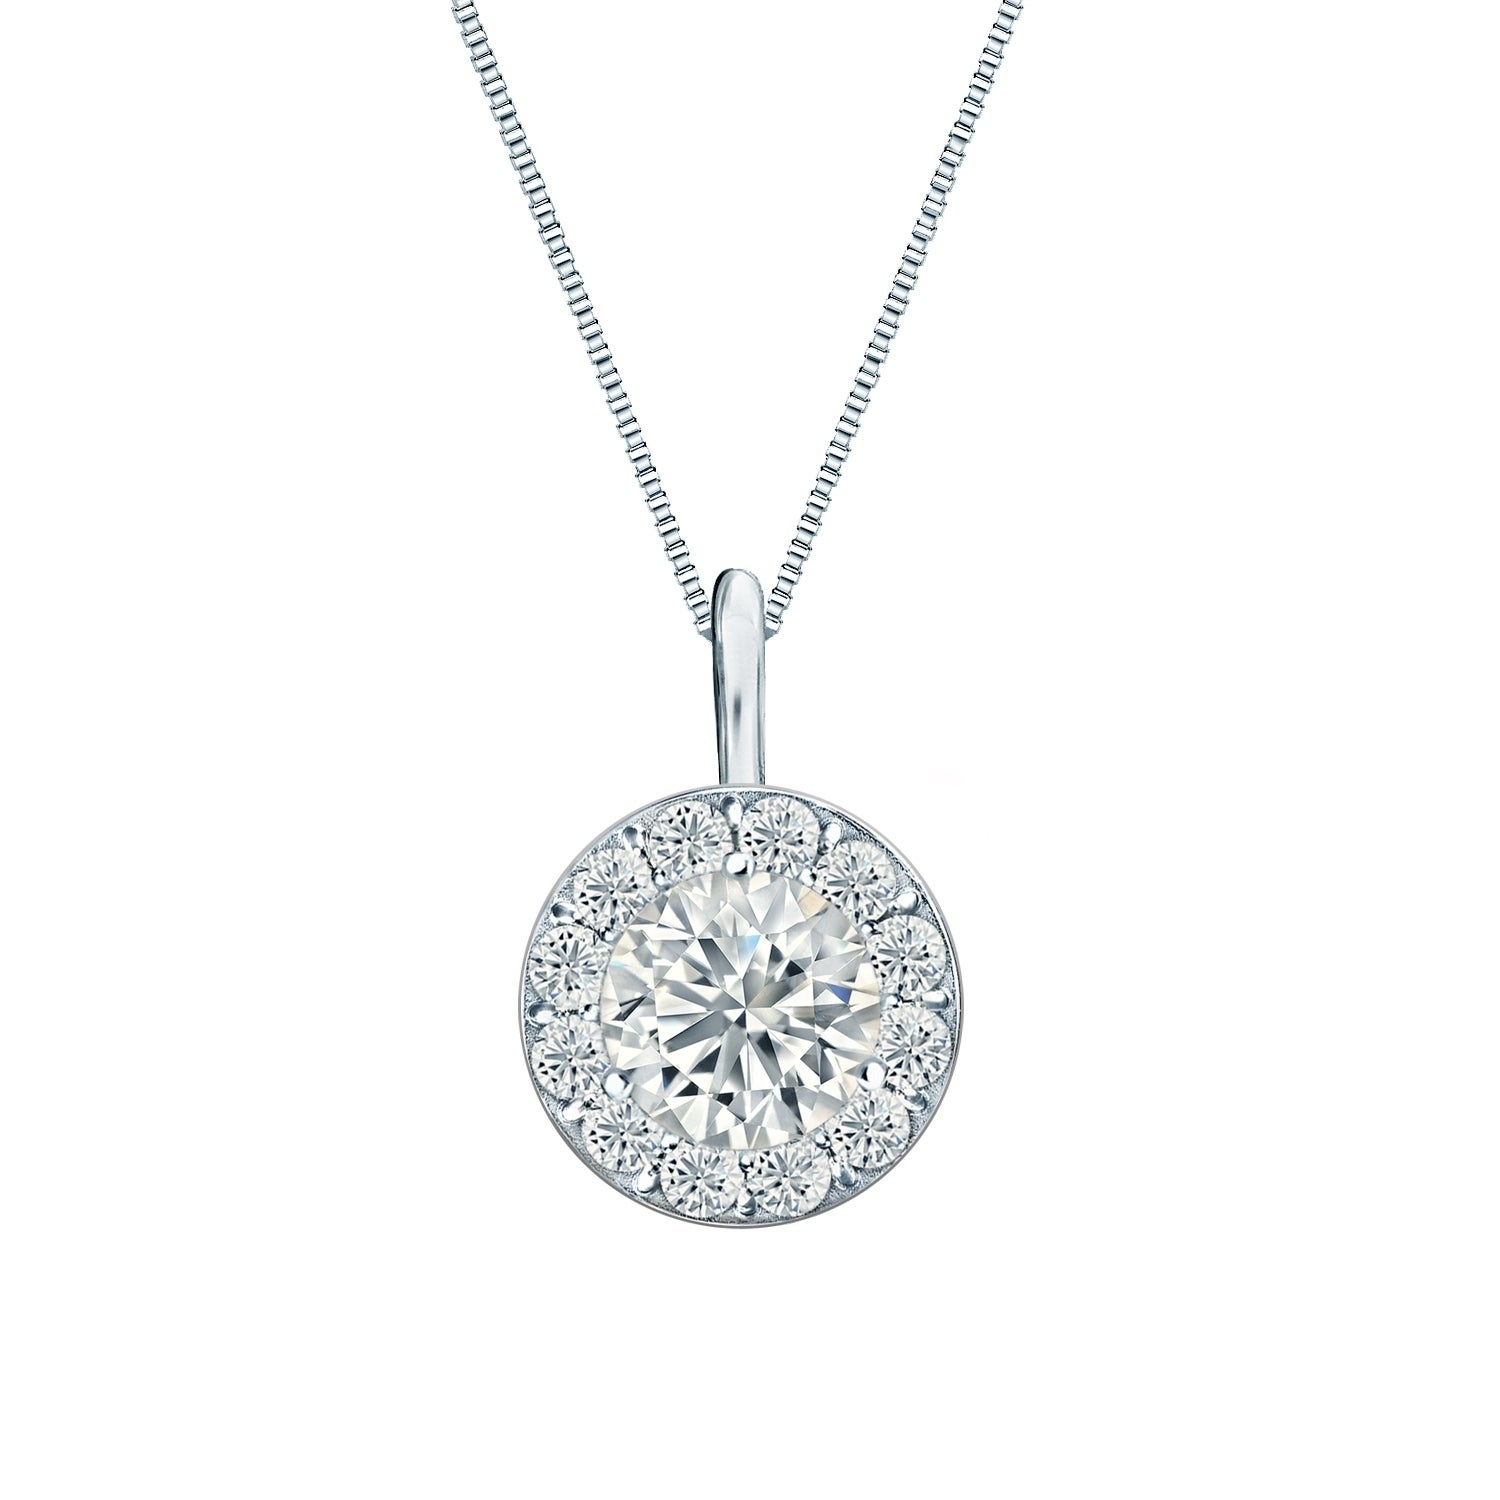 Ethical Sparkle 1/4ctw Round Lab Created Halo Diamond Necklace 14k Gold Intended For Most Up To Date Square Sparkle Halo Pendant Necklaces (View 4 of 25)